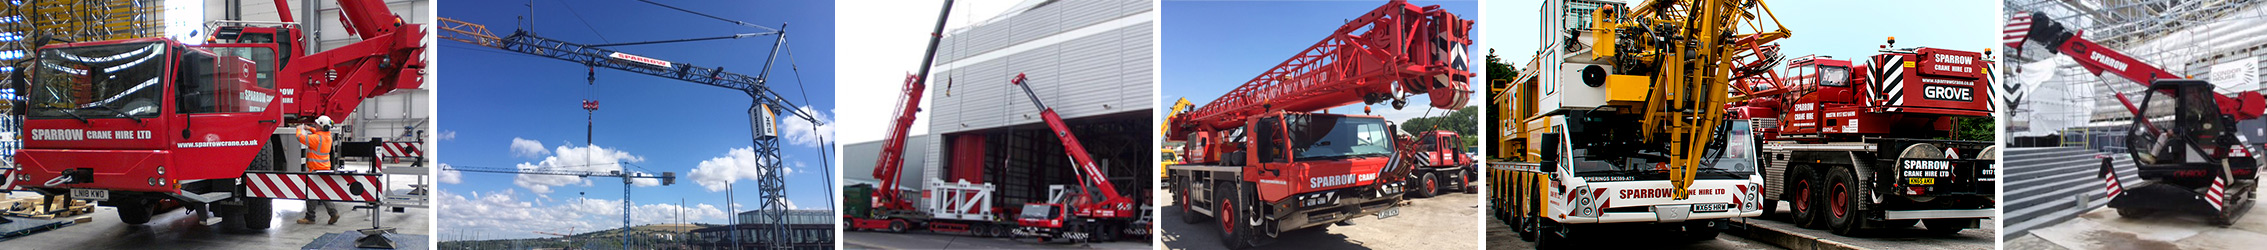 Contract lift hire